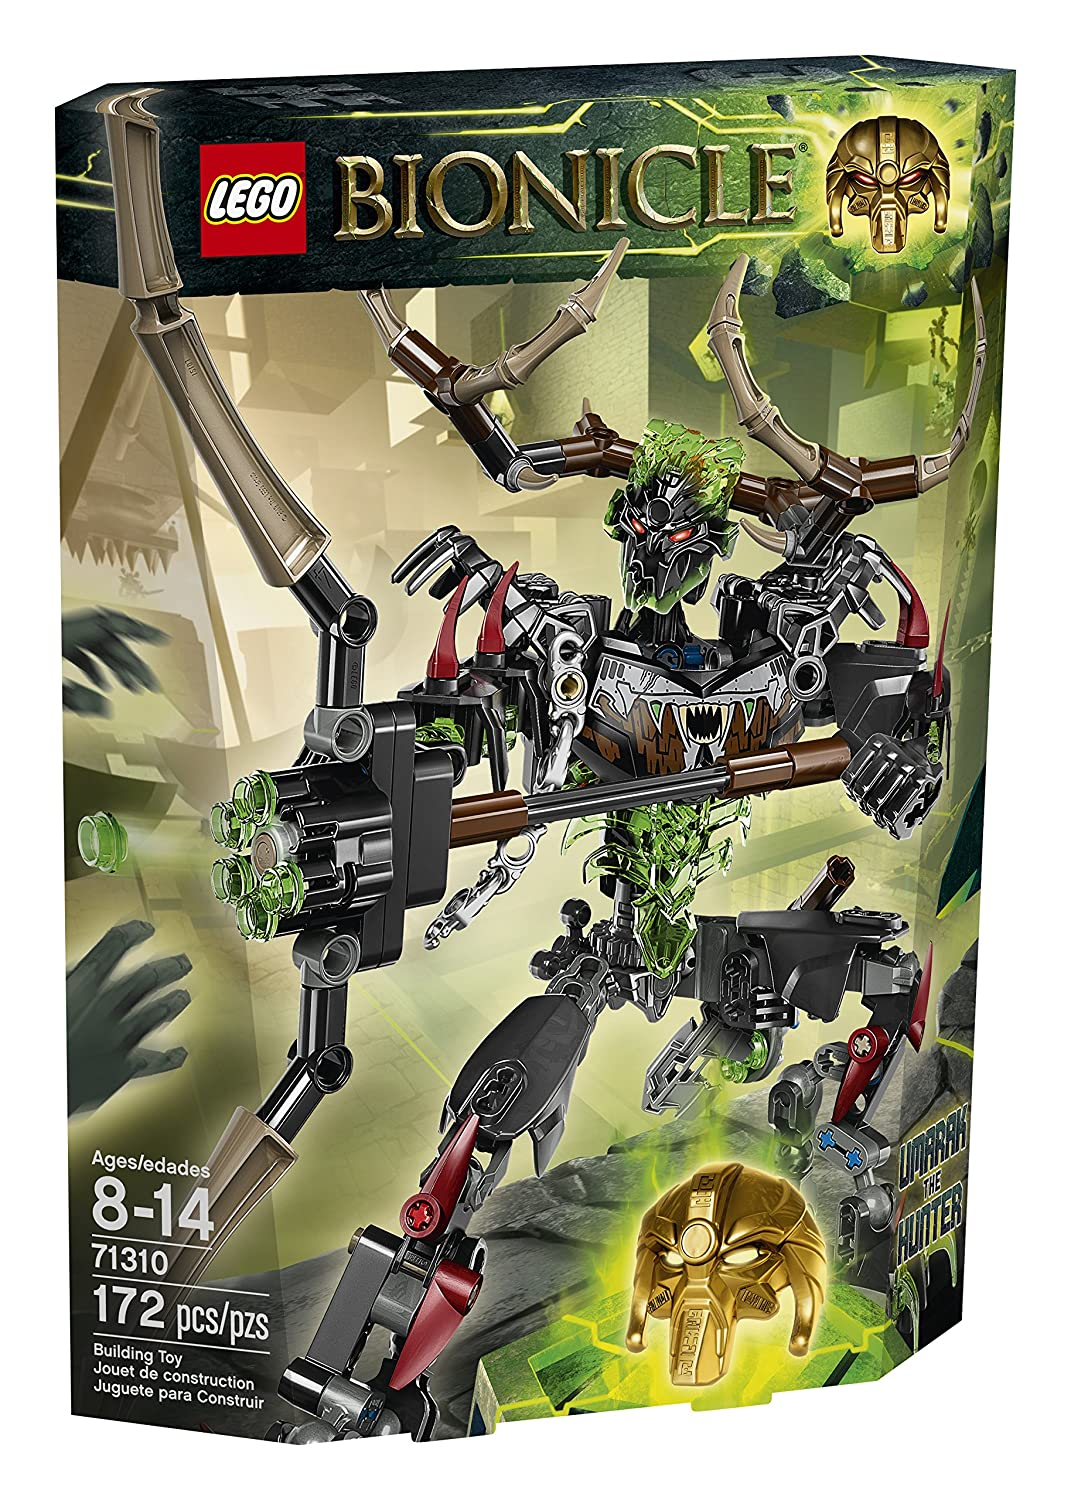 15 Best Lego BIONICLE Sets Reviews of 2021 13